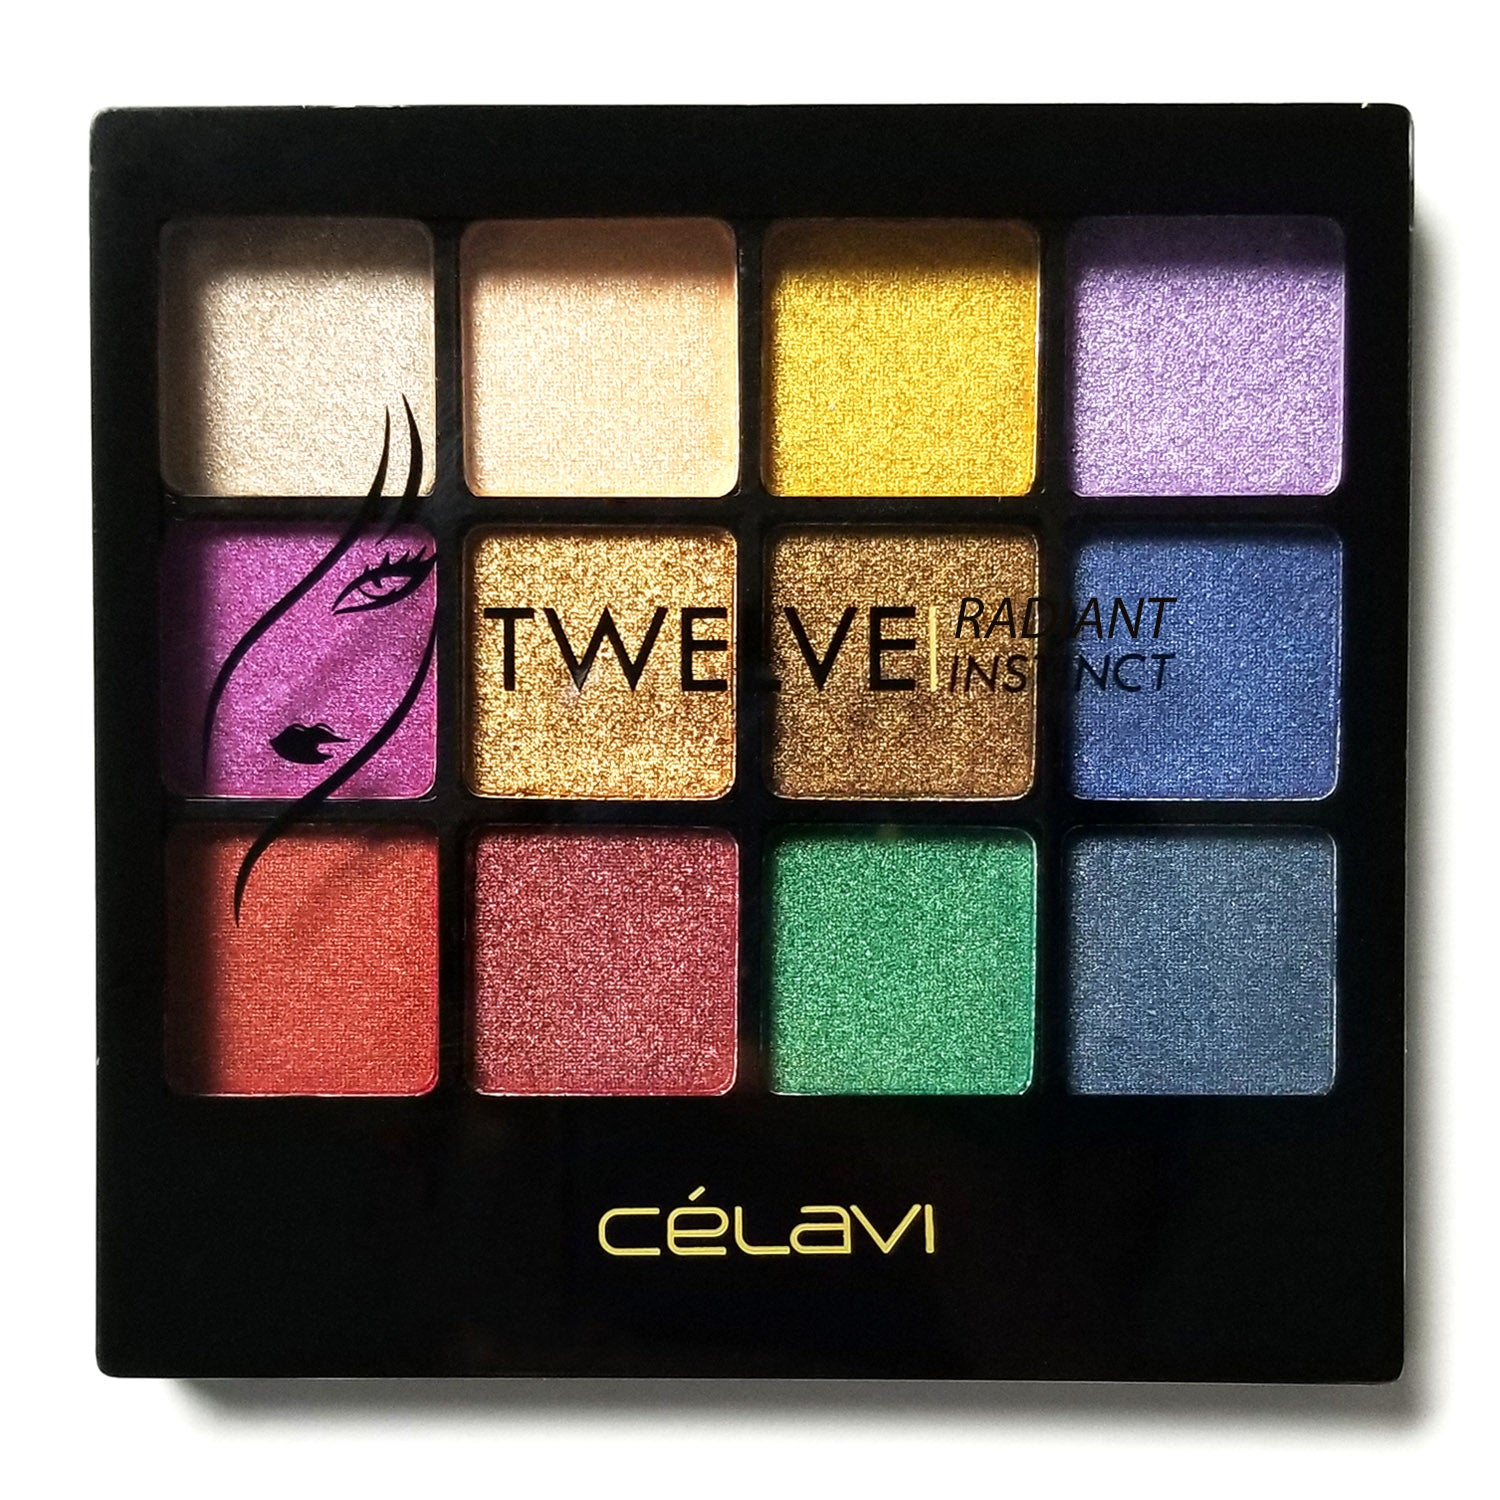 Celavi Twelve Eye Shadow Palette w/ Built in Mirror and Dual Headed Sponge Applicator